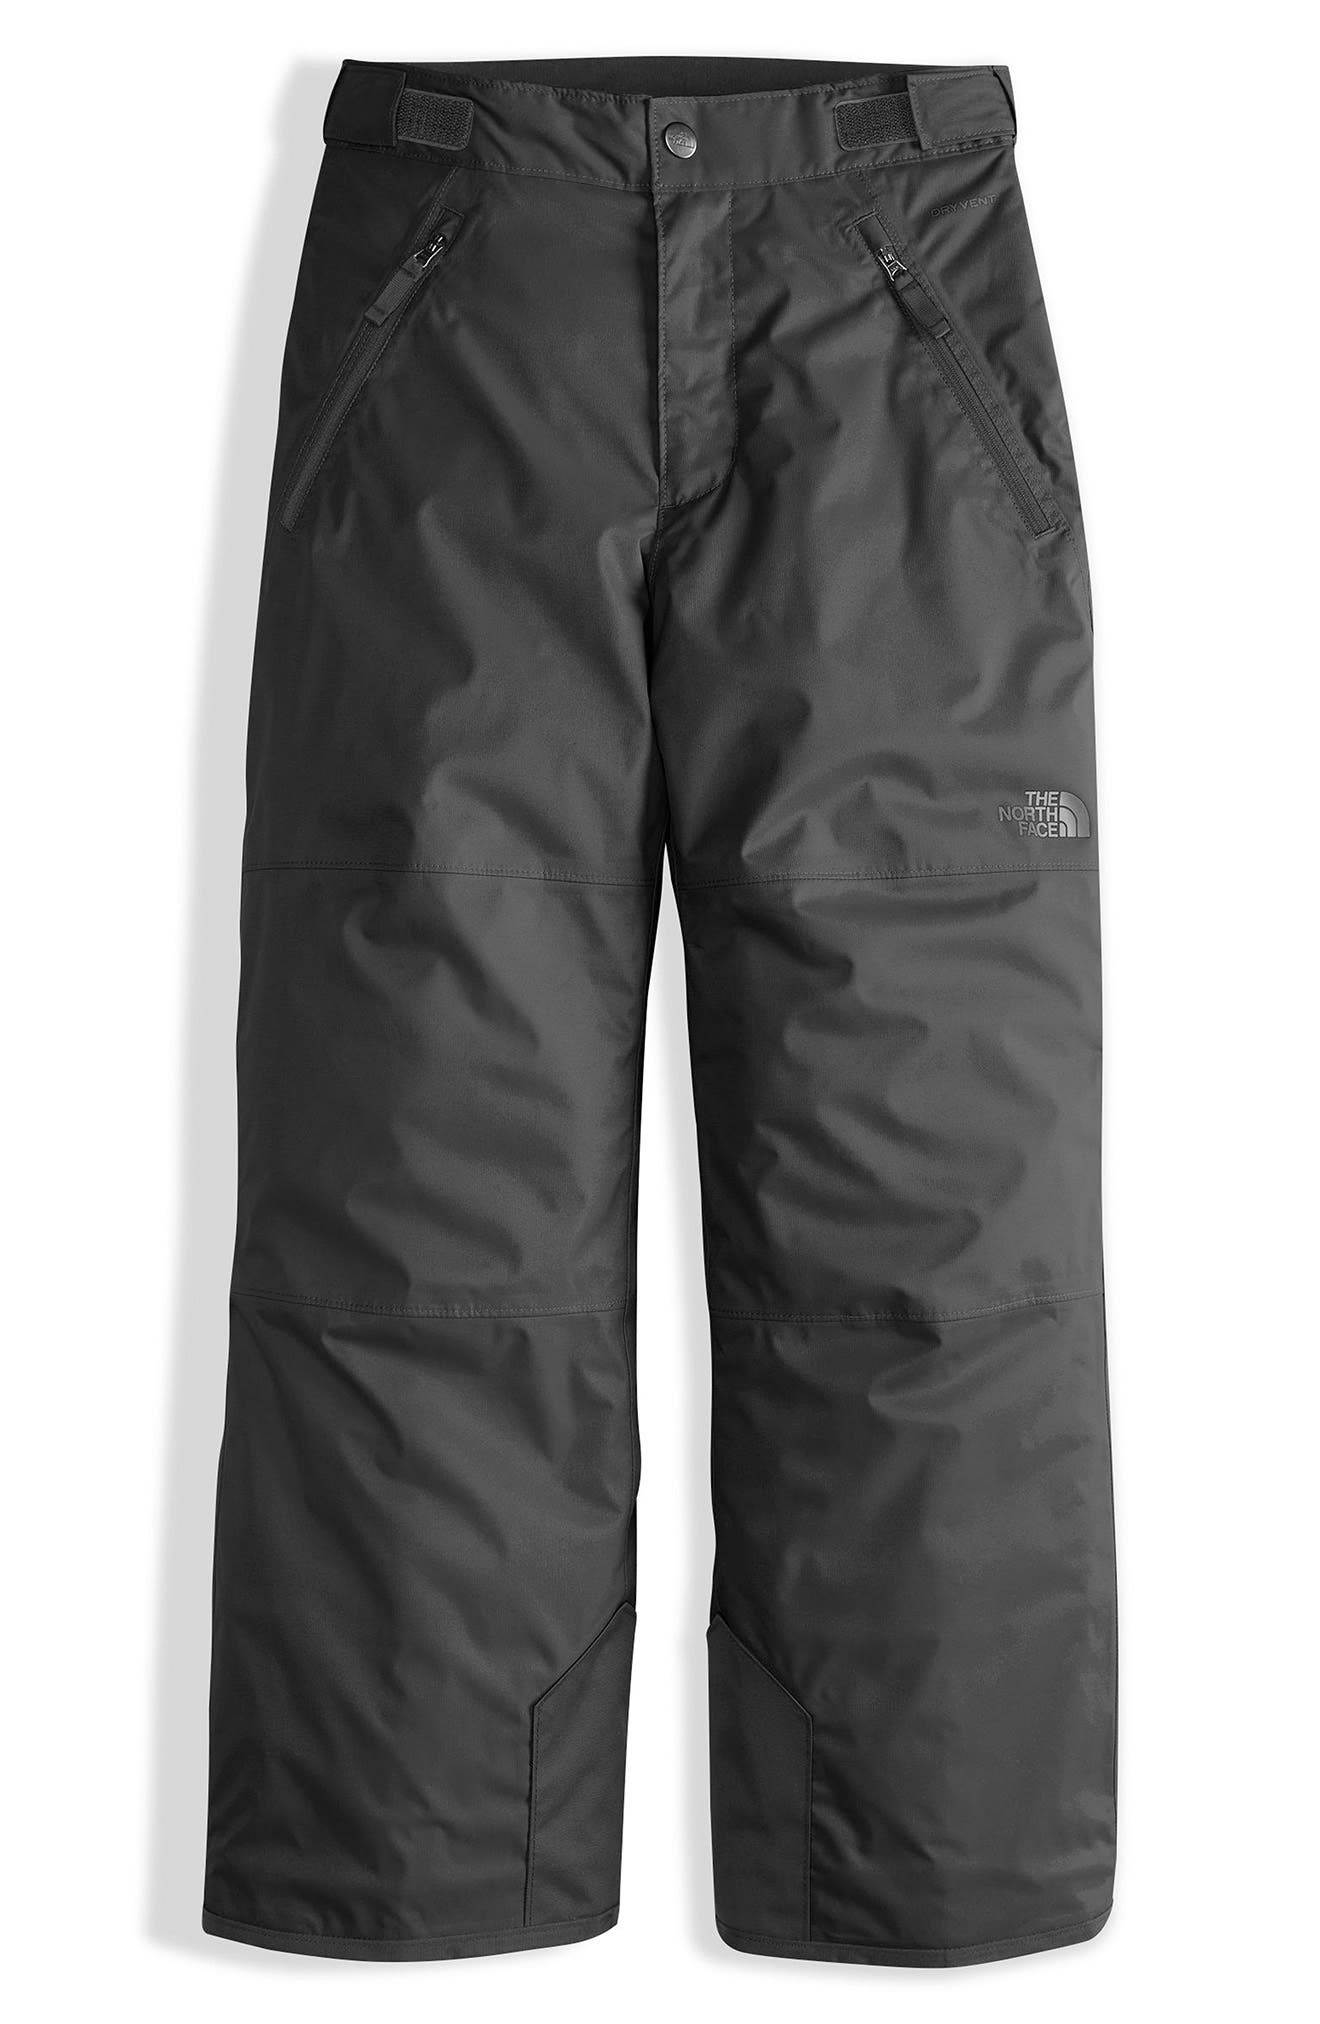 Freedom Waterproof Insulated Pants,                             Main thumbnail 1, color,                             Tnf Black